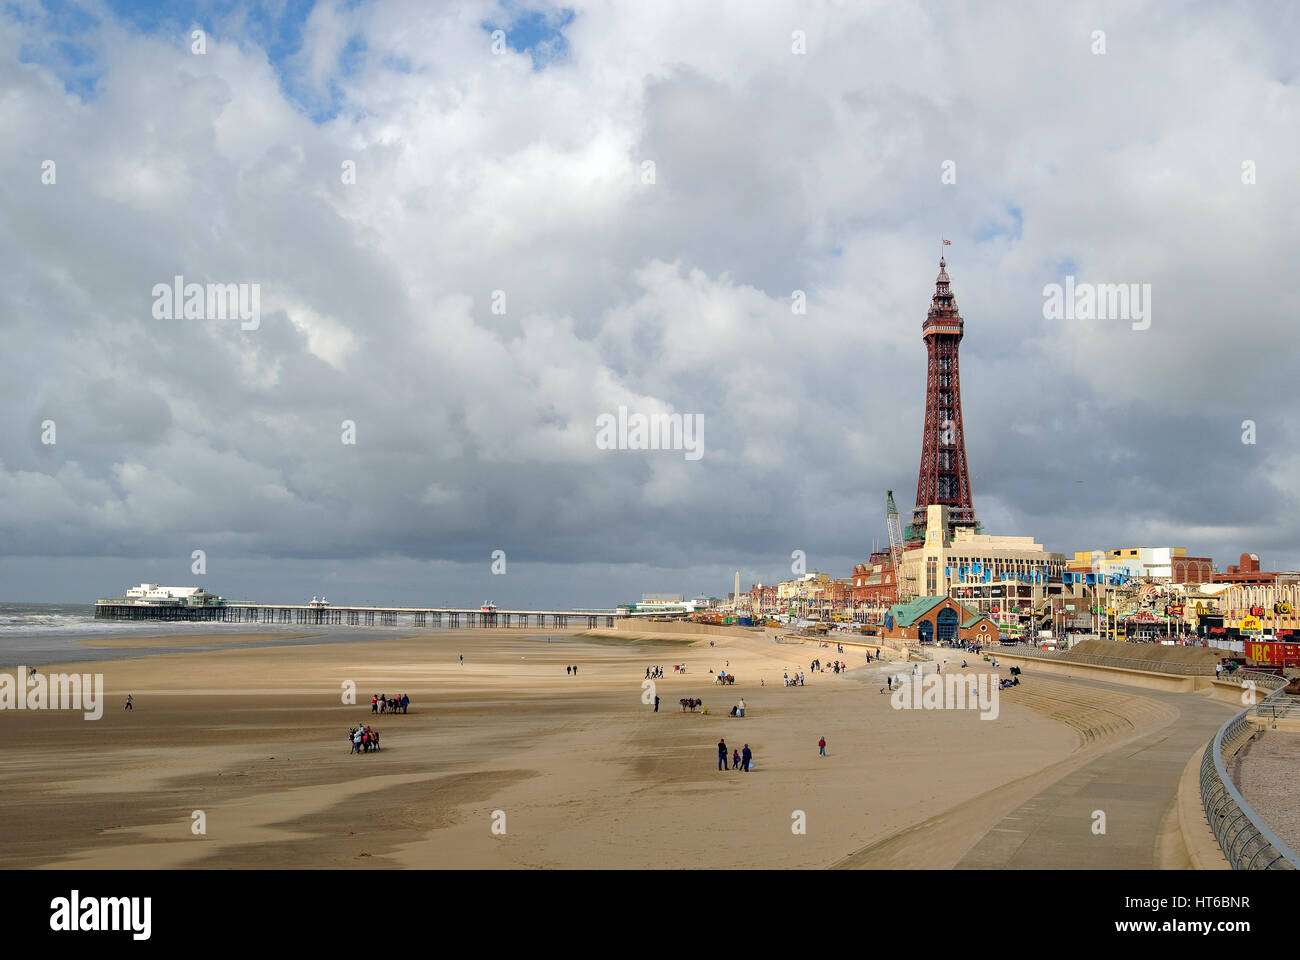 Blackpool tower pier beach waves Golden Mile. - Stock Image